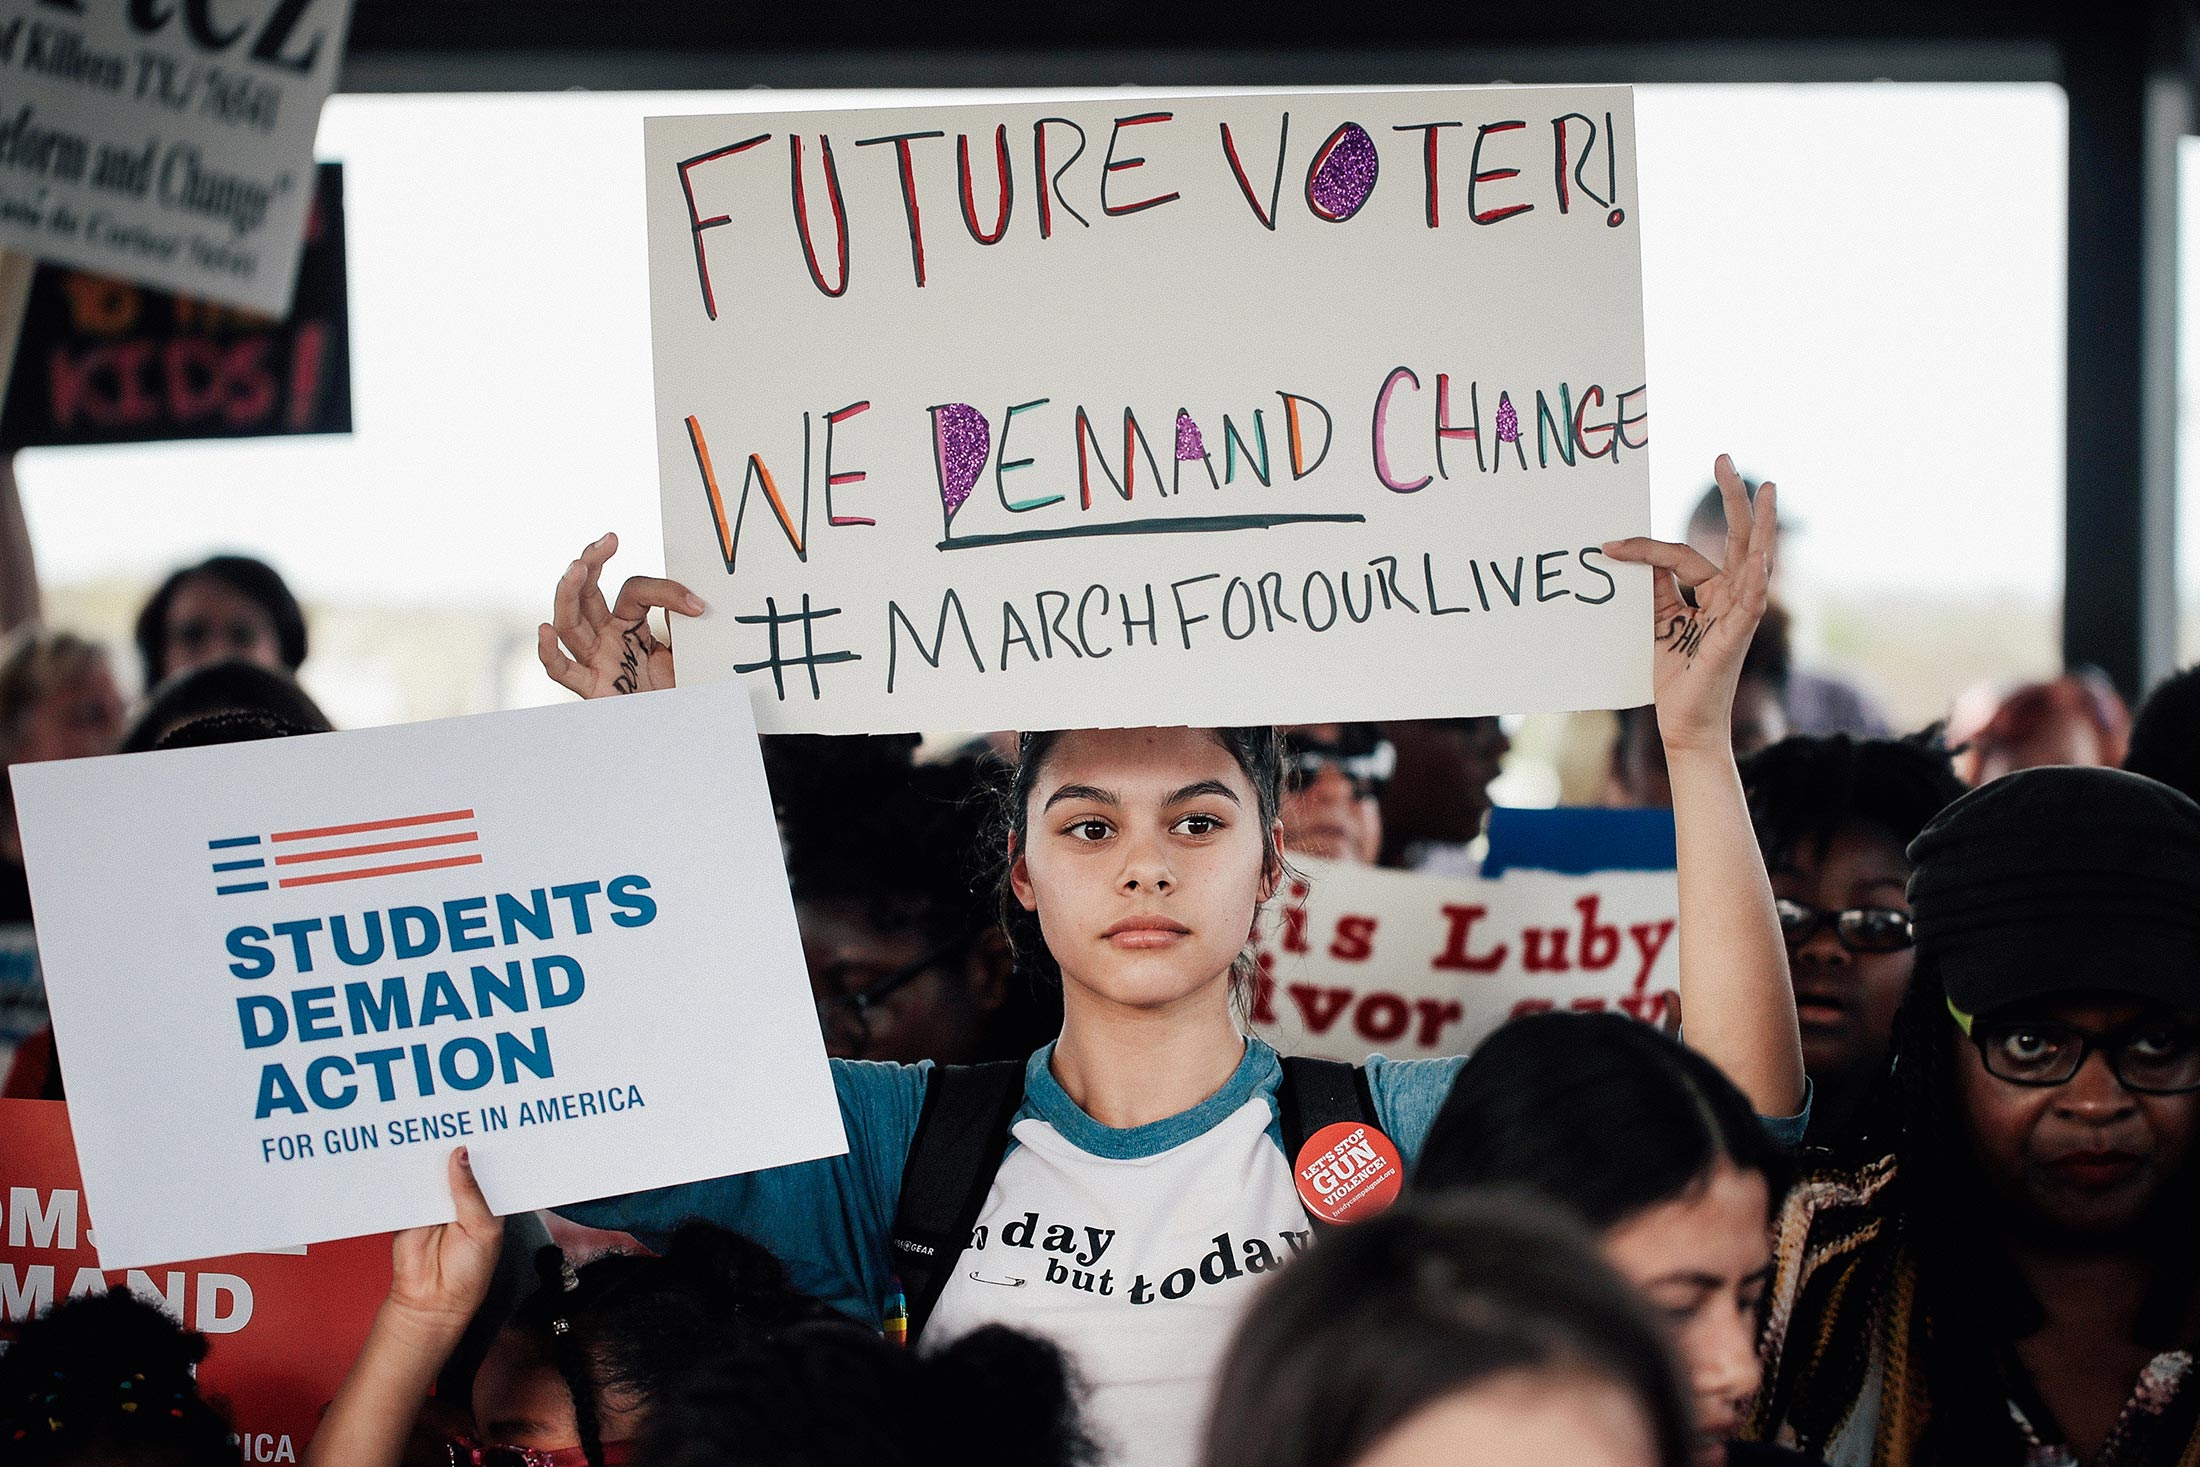 Demonstrators participate in a March for Our Lives rally and march on March 24 in Killeen, Texas.